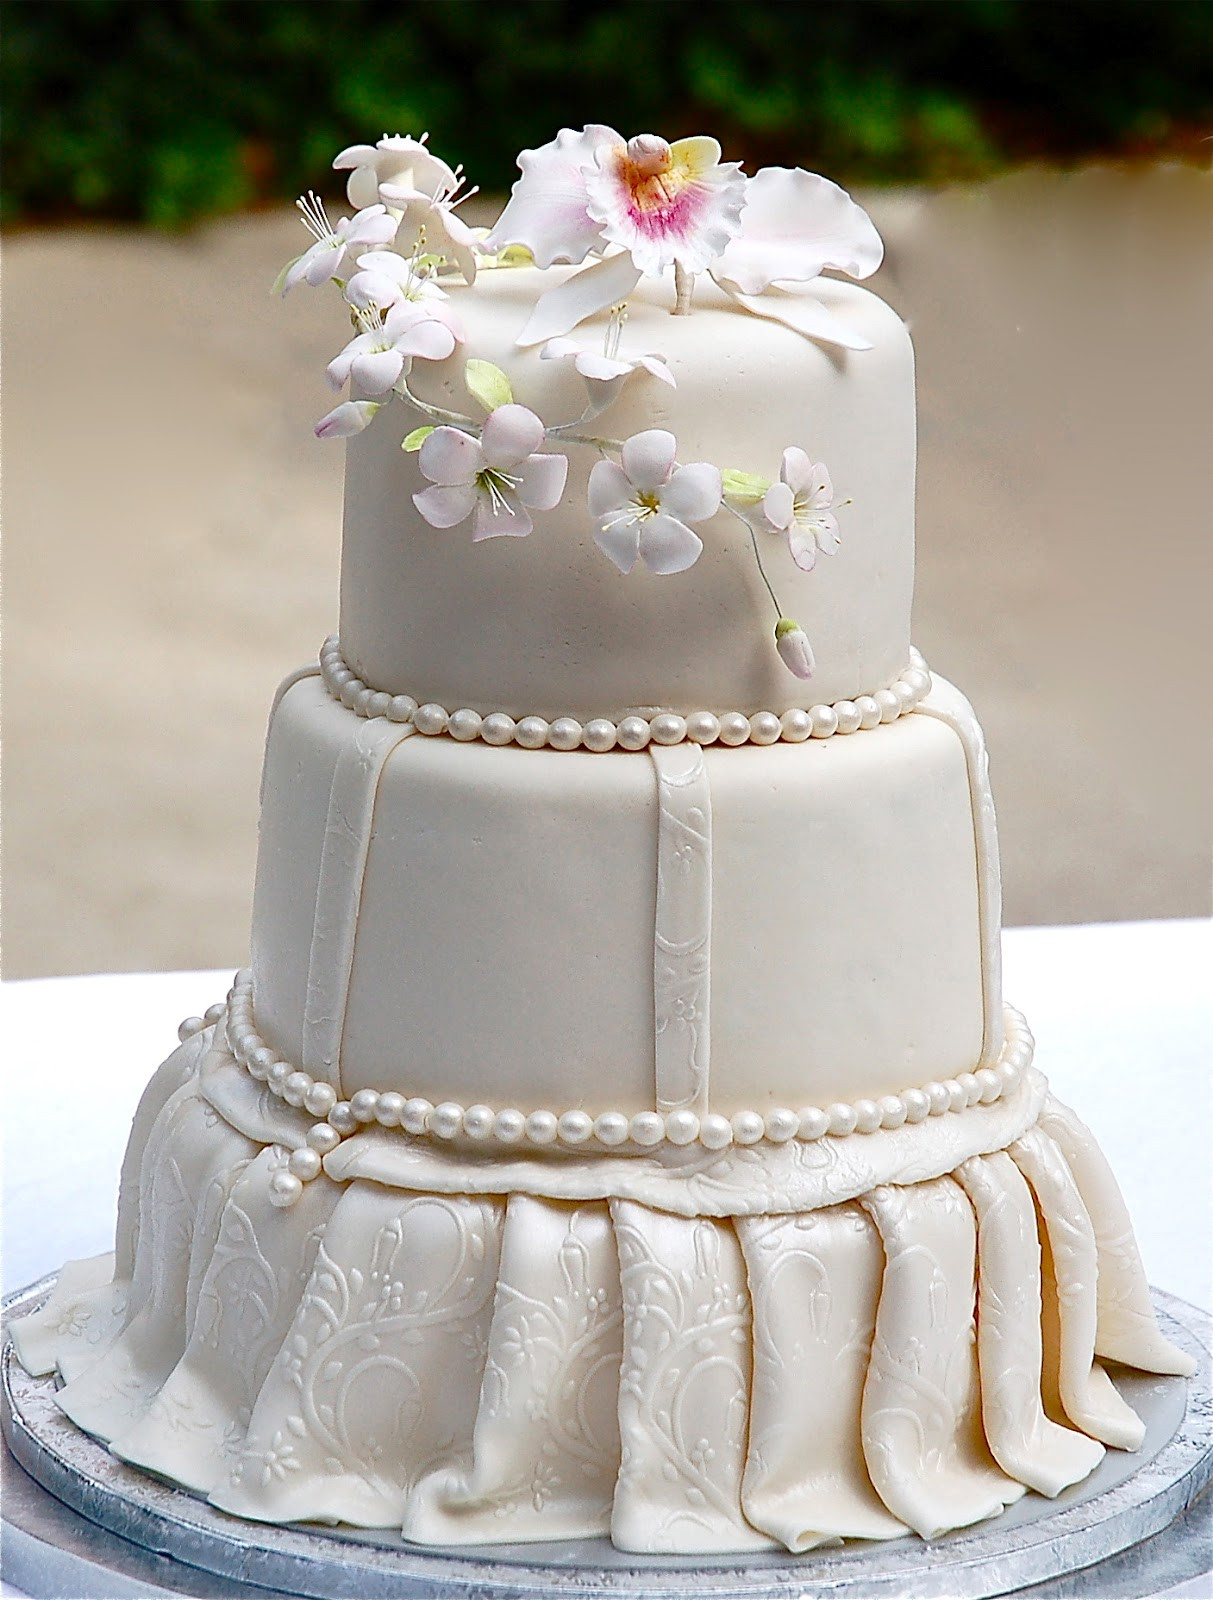 Recipes For Wedding Cakes  Amazing Dessert Recipes Wedding Cake with a Textured